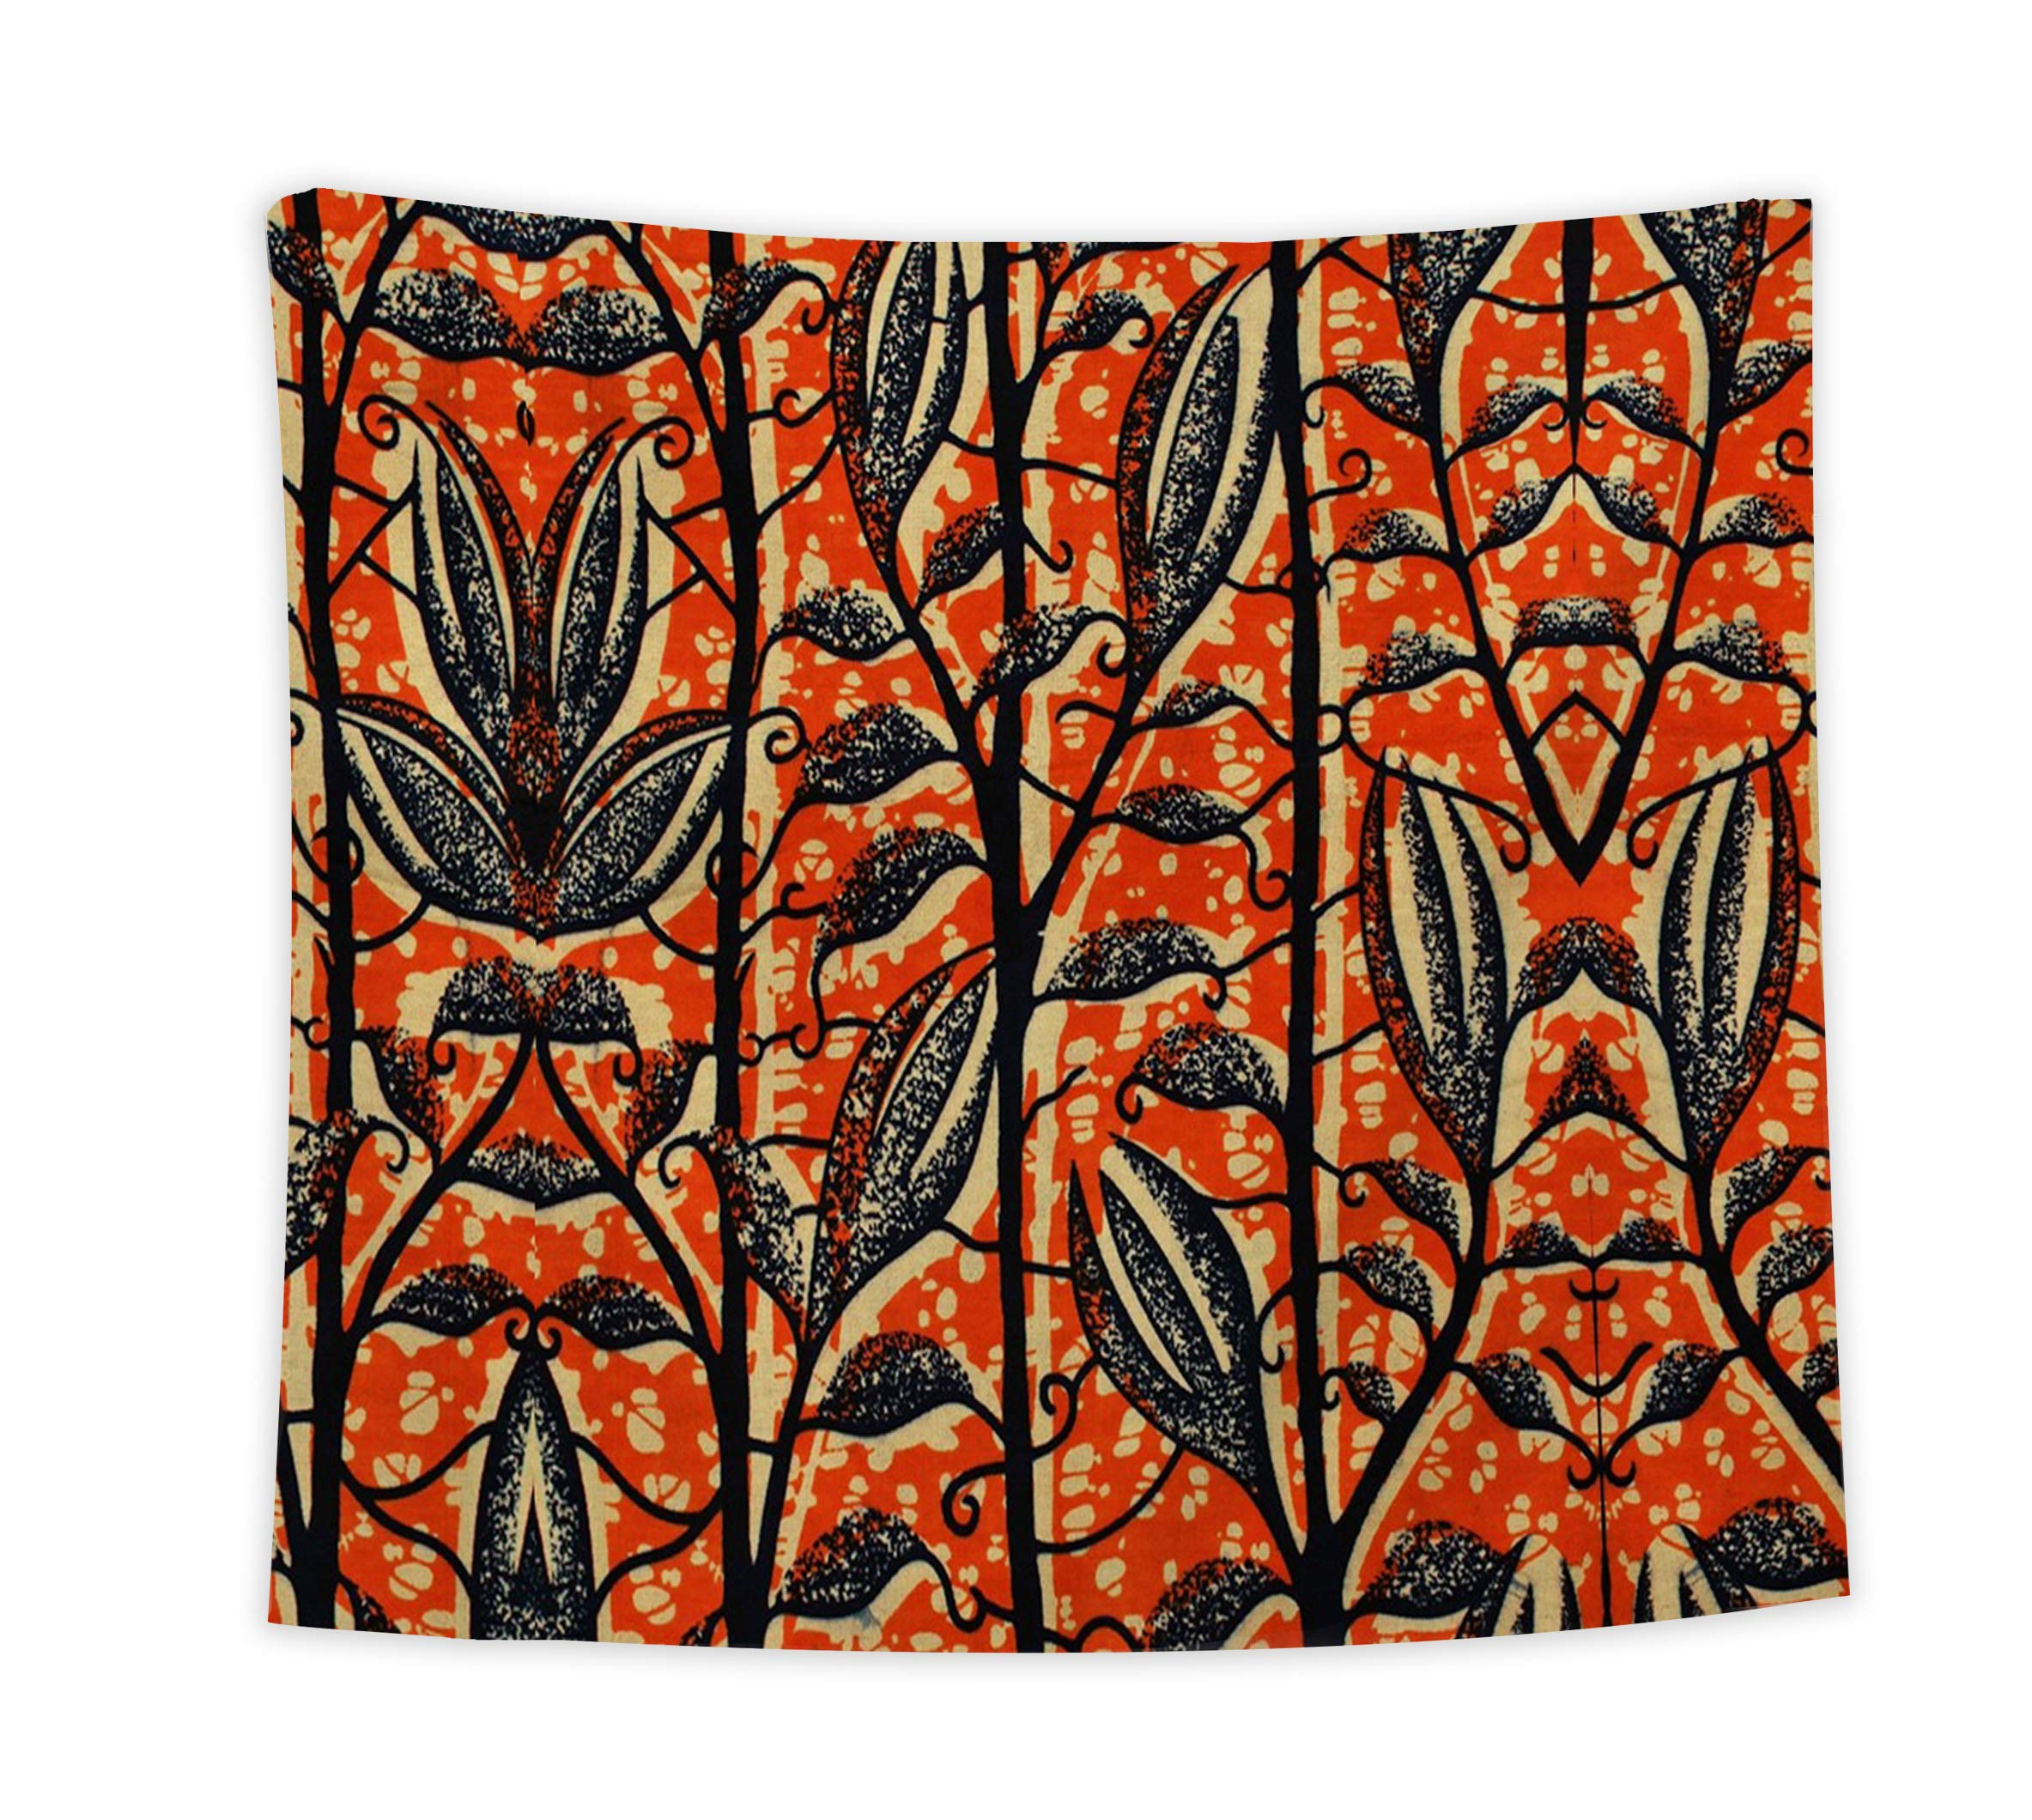 LEO BON Retro Style Leaf Pattern Wall Art Tapestries,Tapestry for Bedroom Dorm Decor Wall Hanging Throw 59x90inch